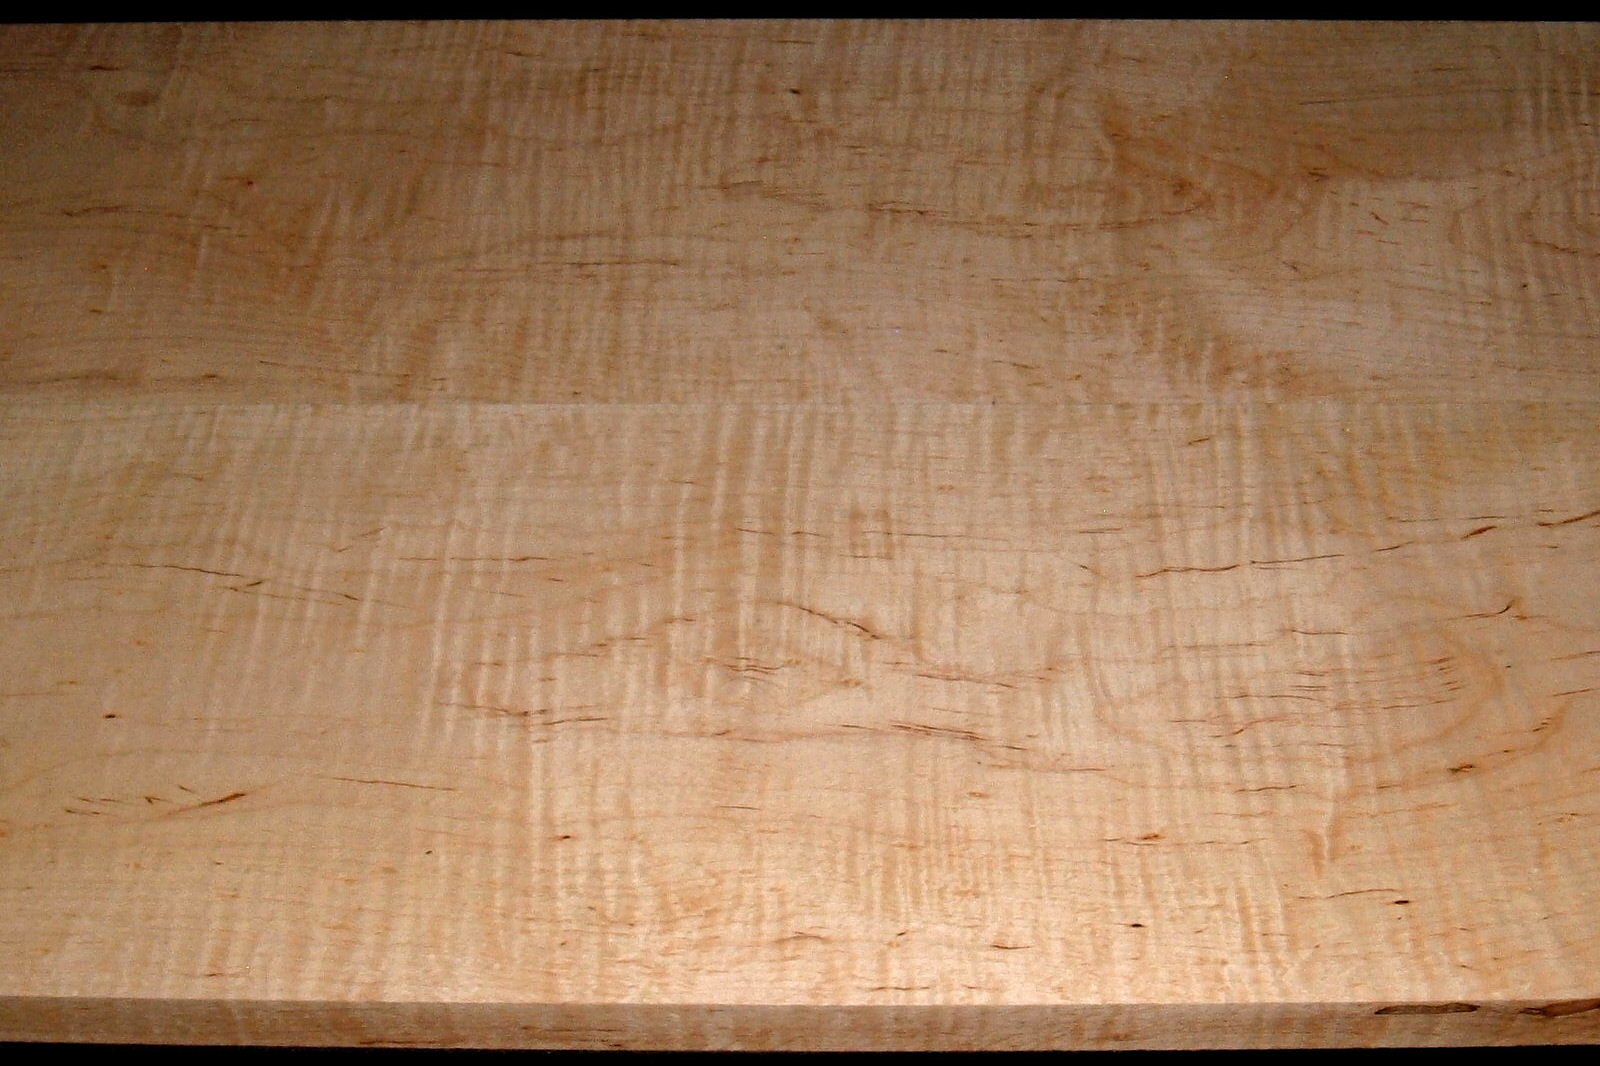 M2007-545, 2 Bd Set, 1-1/8x11-1/4x49, 1-1/16x11x49, Cut from Same Plank, Mineral Streaked Curly Maple